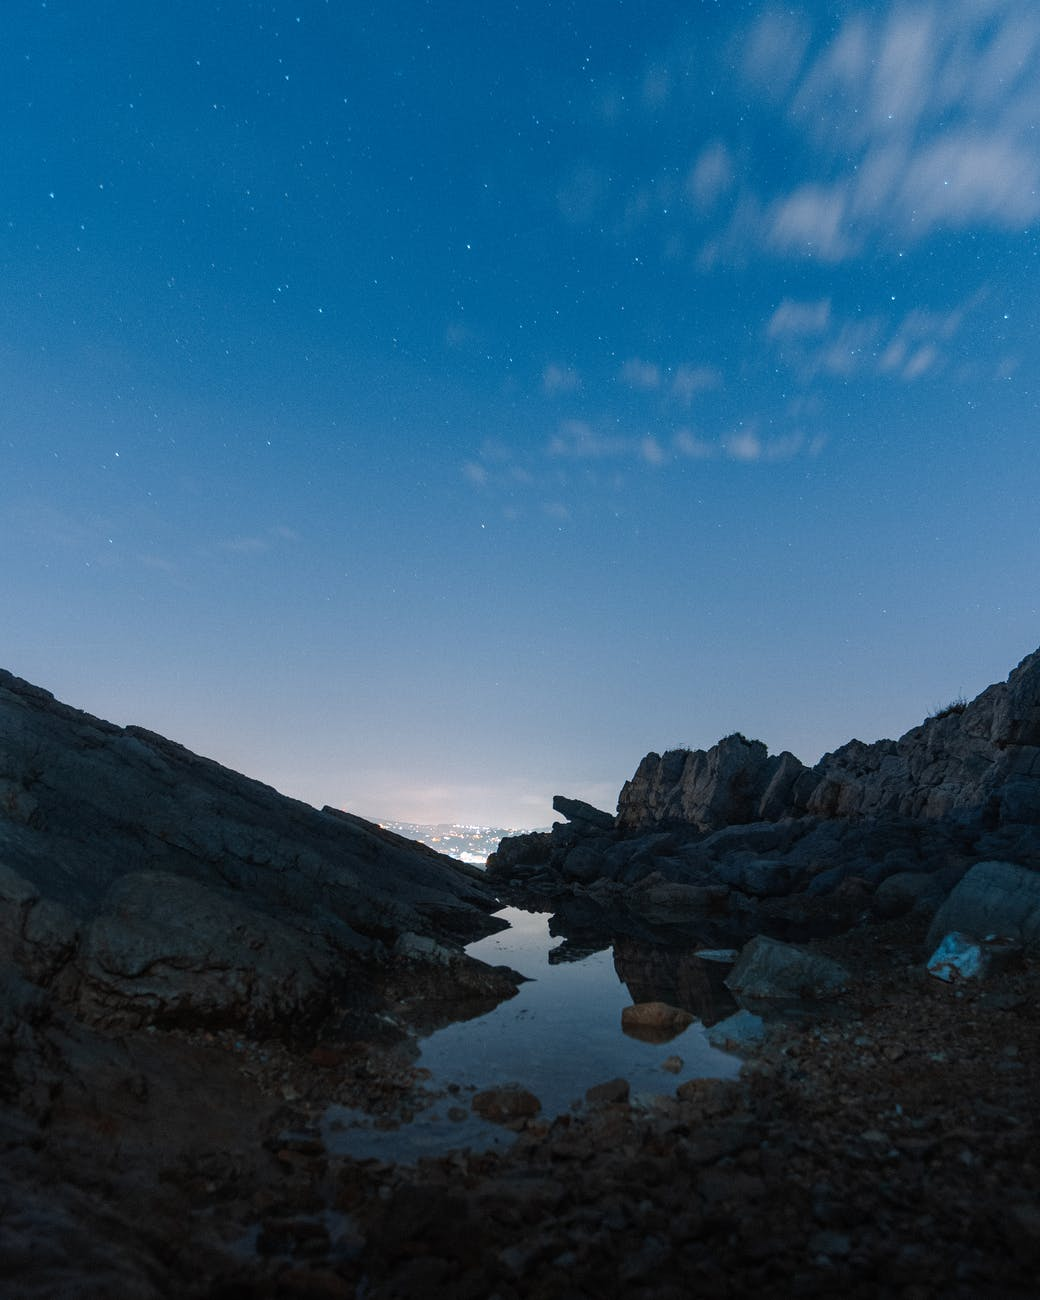 rocky coast with shallow water in evening